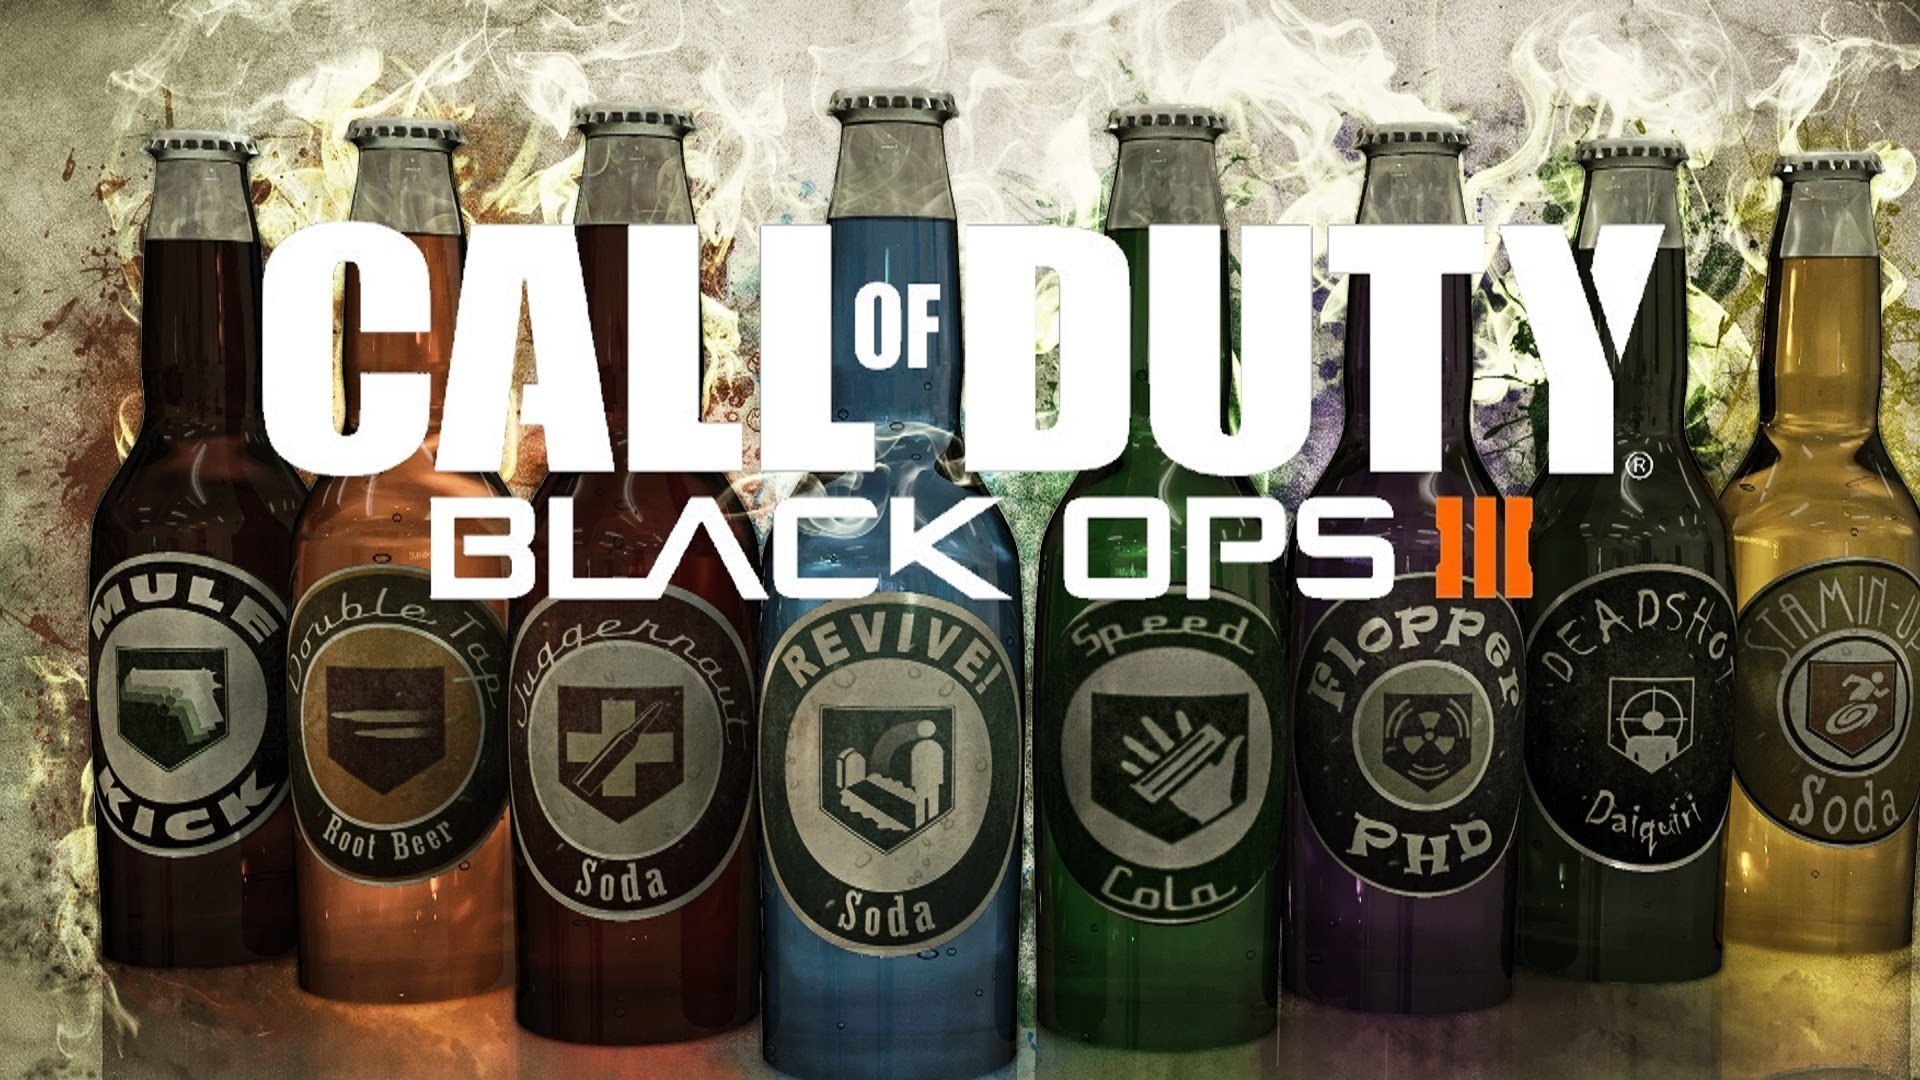 3840x2160 Black Ops 3 Wallpaper High Resolution Desktop Call Of Duty Iii Hd Background Mobile Phones